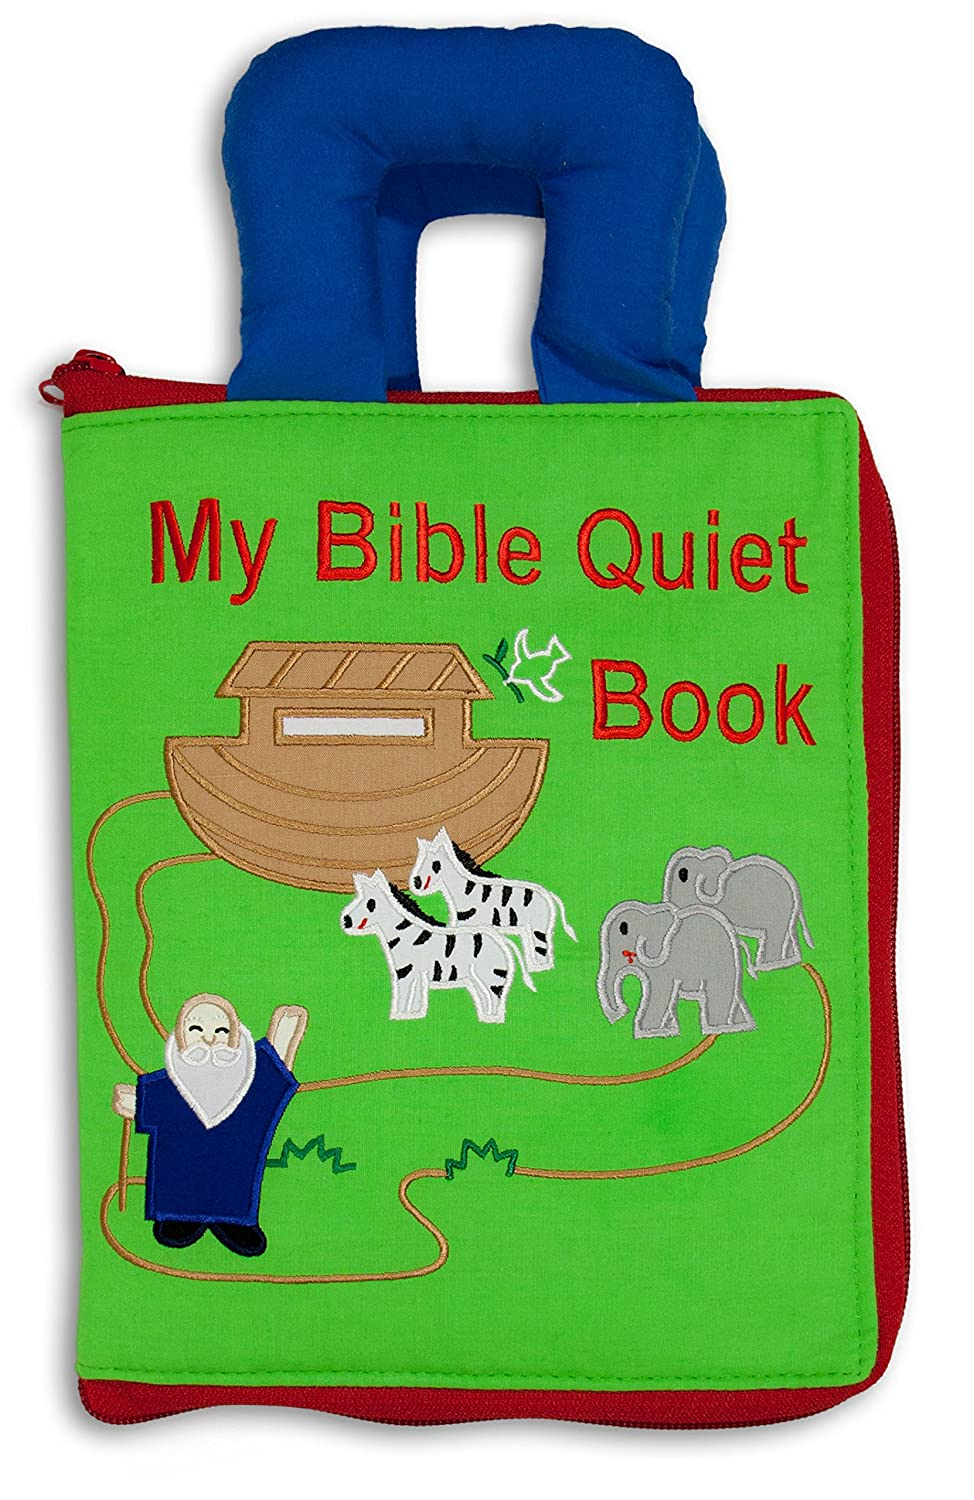 Amazon.com: My Bible Quiet Book: My Growing Season: Toys & Games